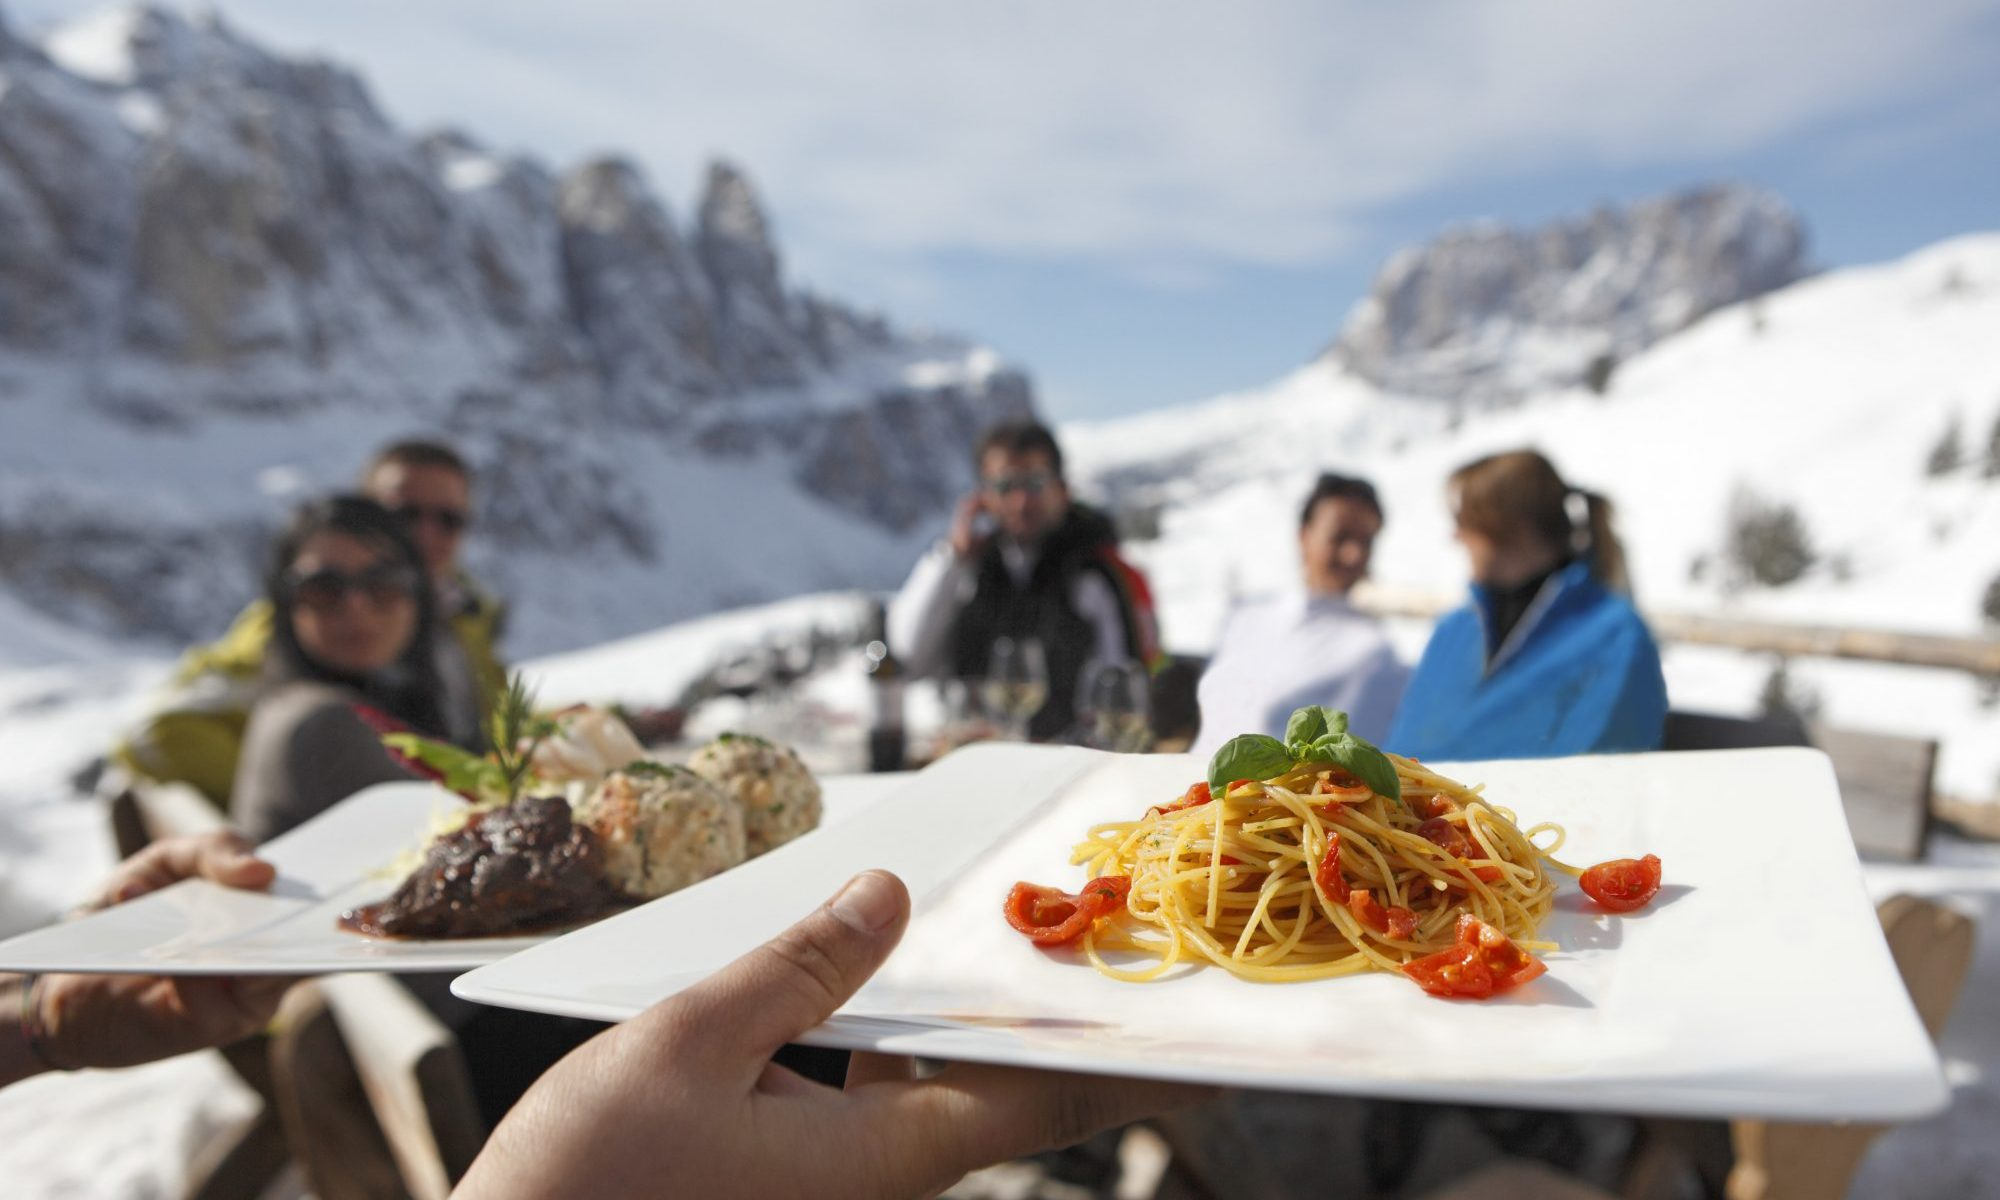 The Alpine huts along the ski slopes of the Gardena Valley serve local fare mixing traditional Italian with South Tyrolean dishes; against the magnificent background of the snow-capped peaks of the Sella Mountain Group in the Dolomites. Photo: IDM Sudtirol - The roof of the Rifugio Comici in Selva Val Gardena was restored in record time. Photo: IDM Sudtirol - The roof of the Rifugio Comici in Selva Val Gardena was restored in record time.